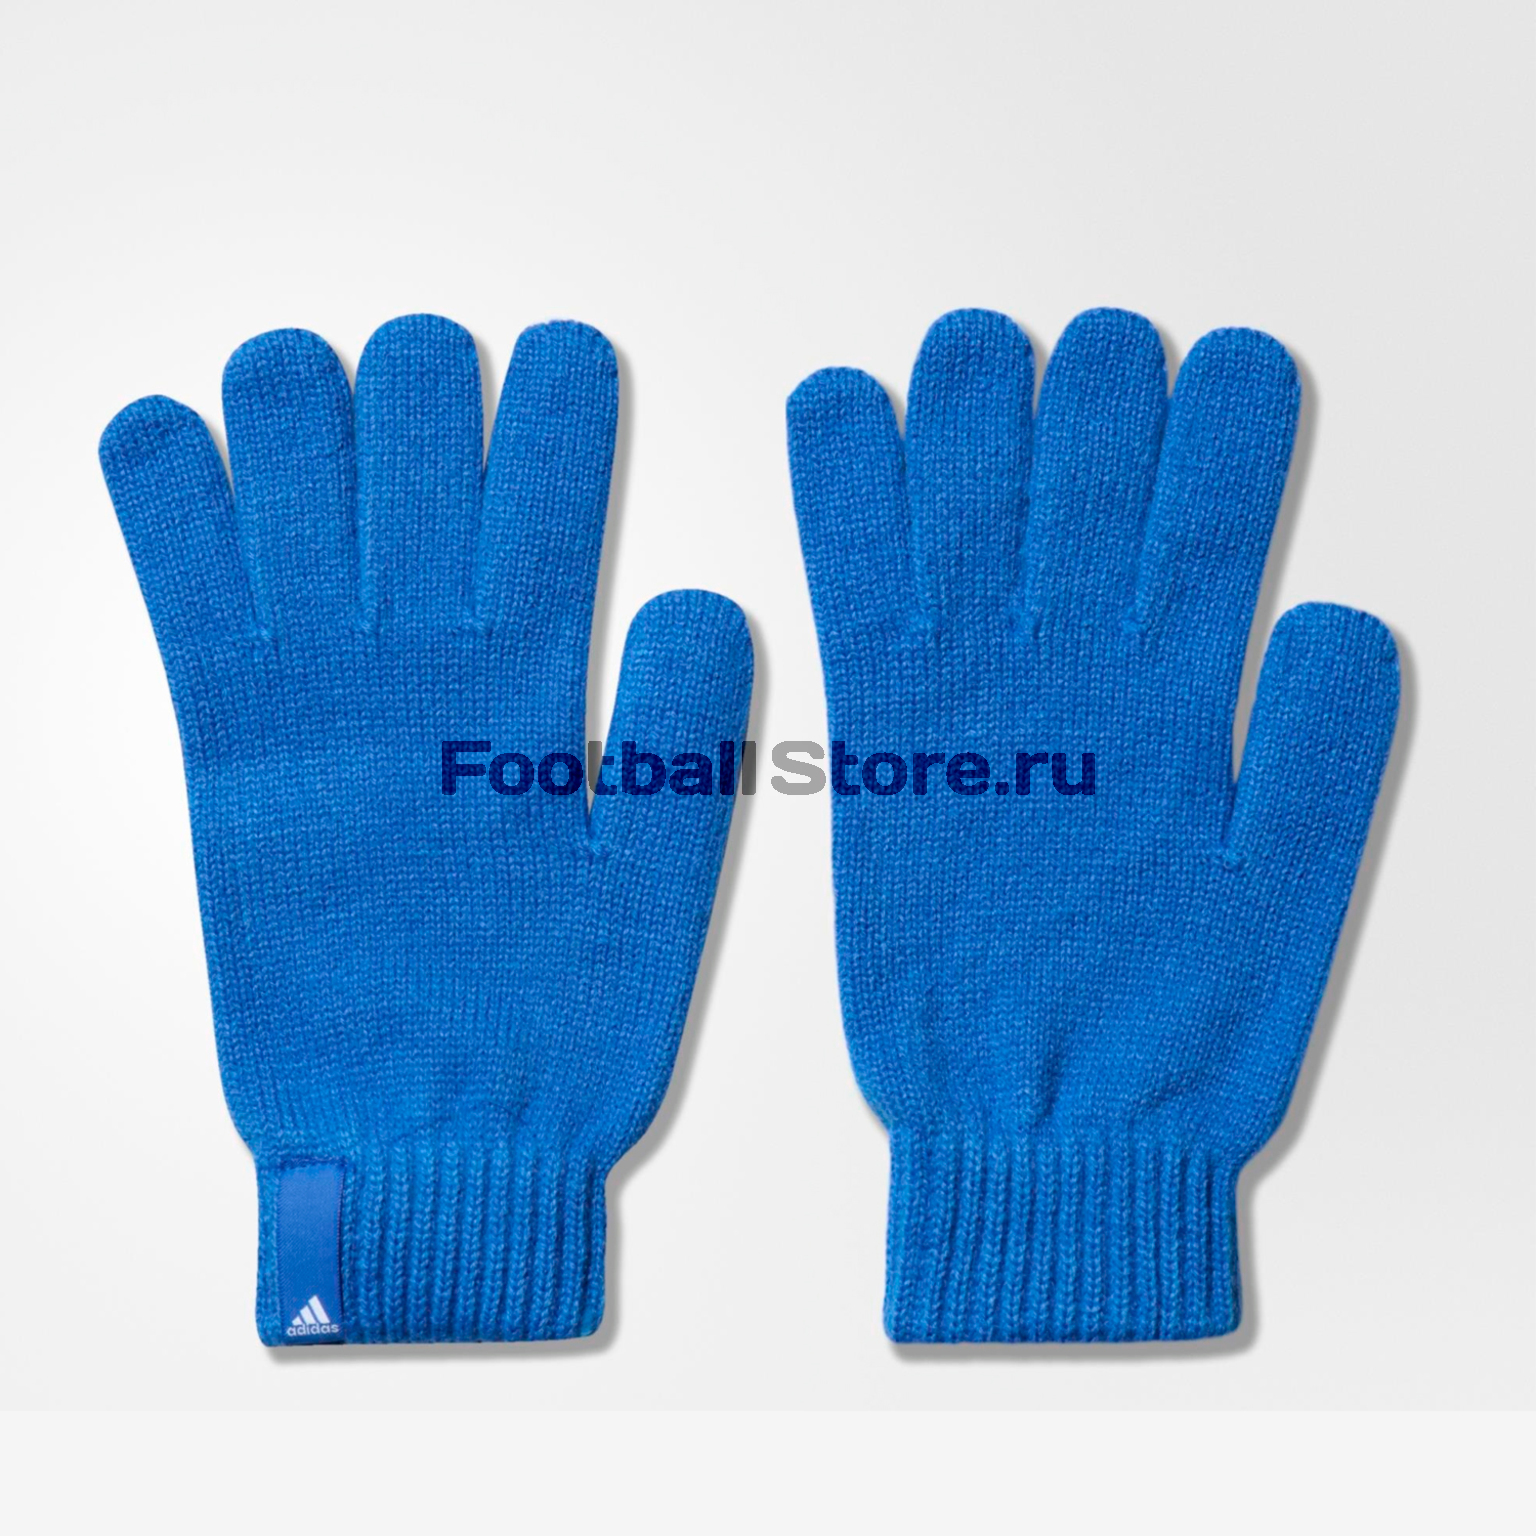 Перчатки Adidas Perf Gloves AB0347 3m work gloves comfort grip wear resistant slip resistant gloves anti labor safety gloves nitrile rubber gloves size l m